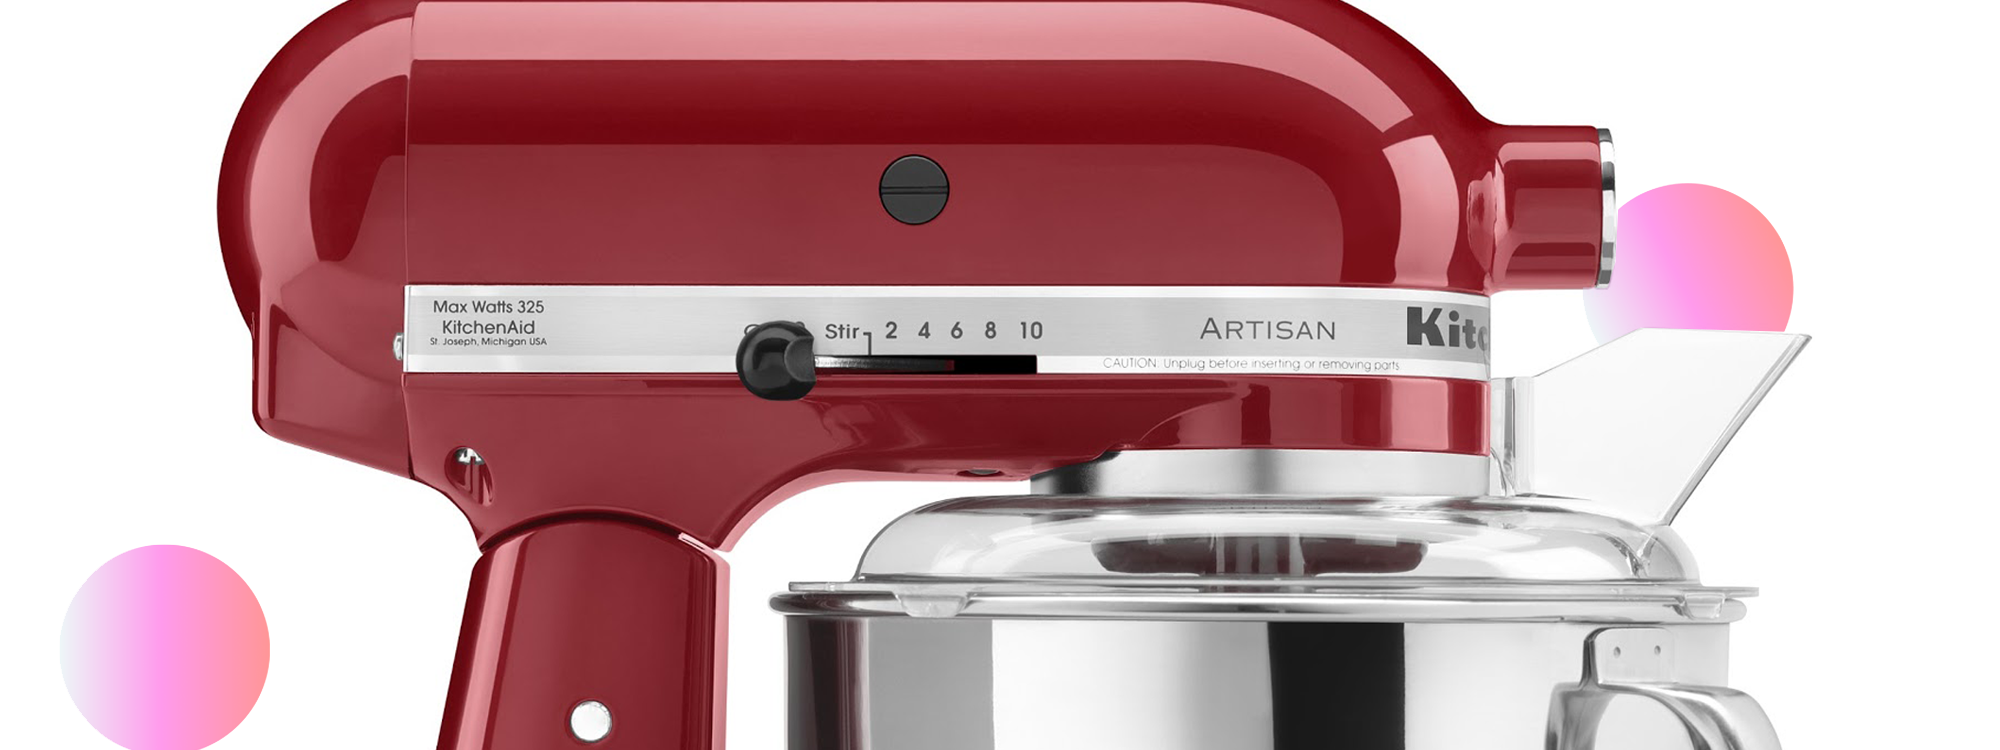 All Kitchenaid Colors kitchenaid stand mixer new colors march 2017